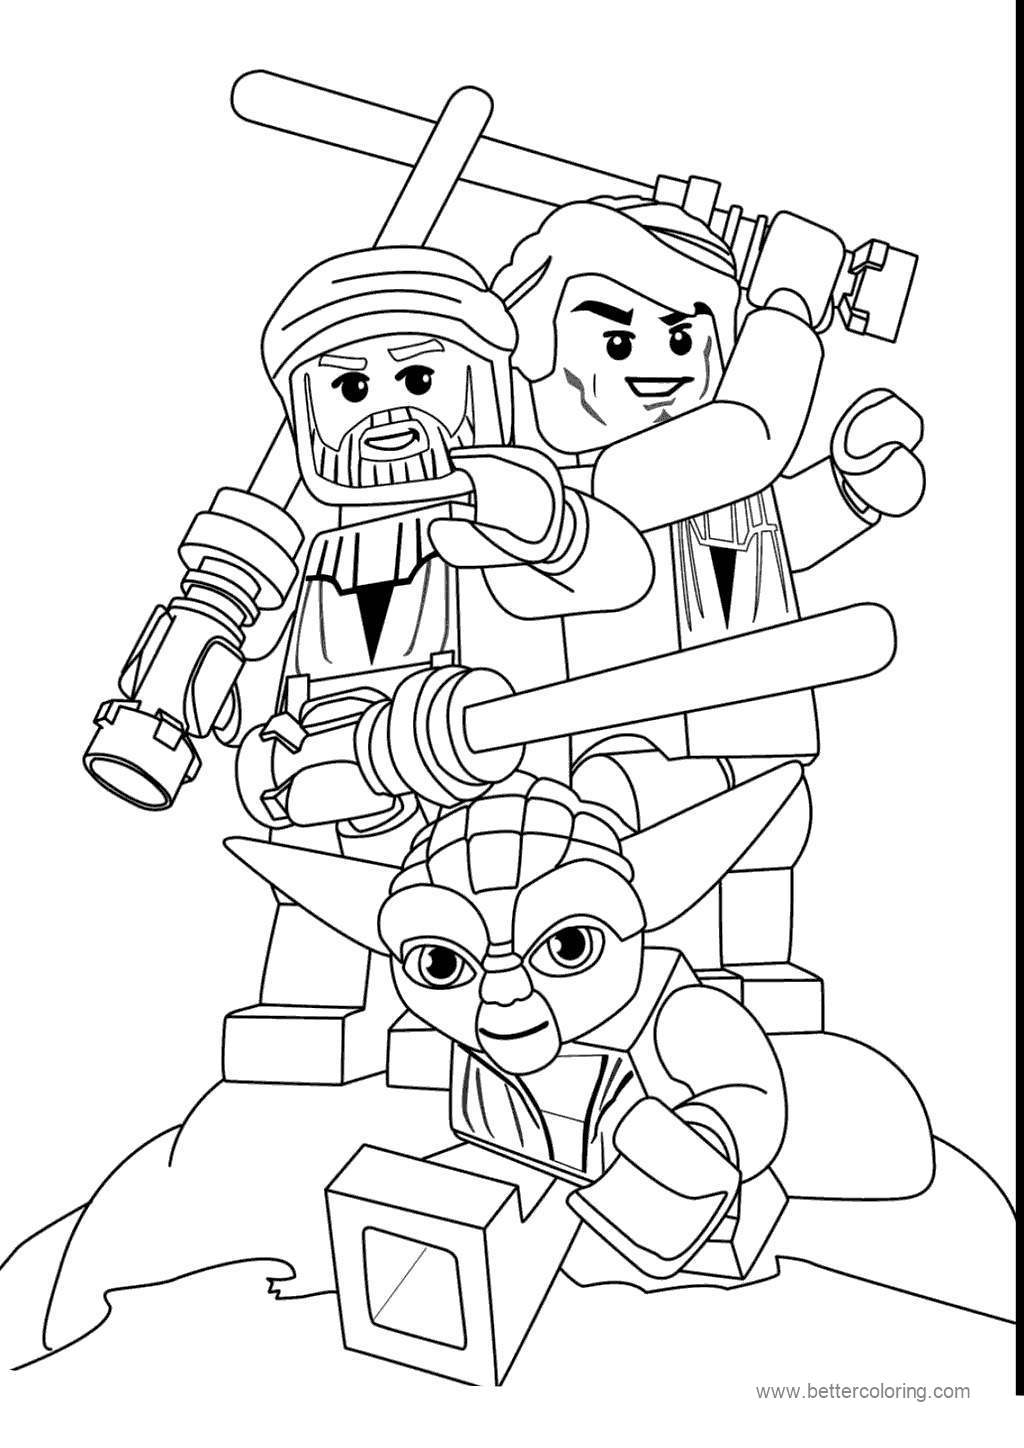 lego star wars coloring pages printable lego star wars coloring pages coloring pages to download wars coloring pages printable star lego